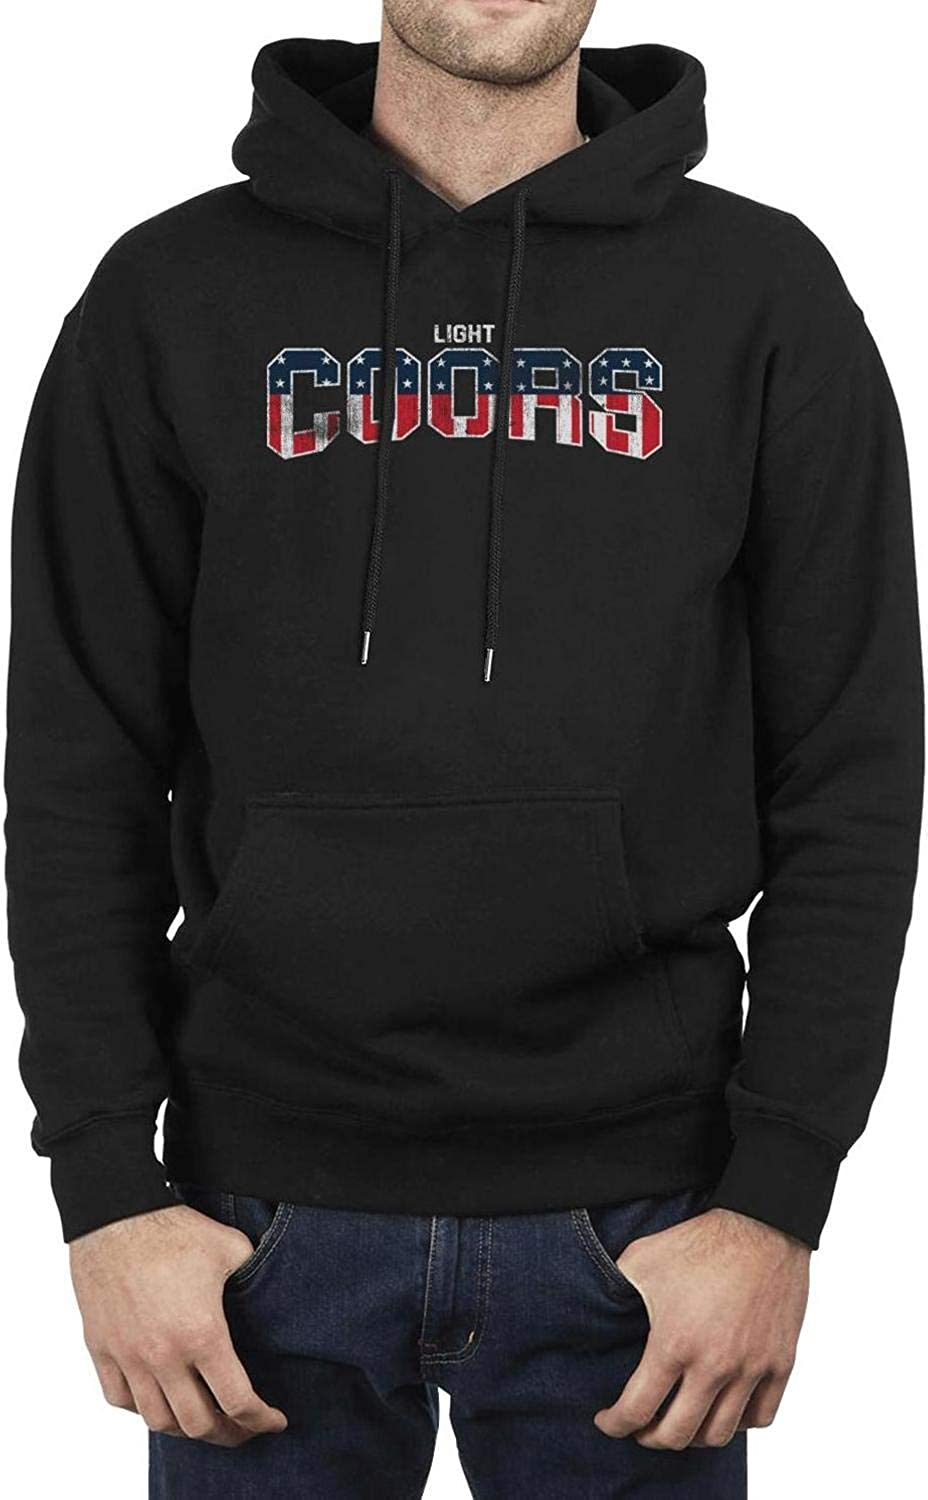 Print Sweaters Outdoor Outfit Vintage Sweatshirt Mens Casual Hoodies Long Coors-Light-3D-USA-flag